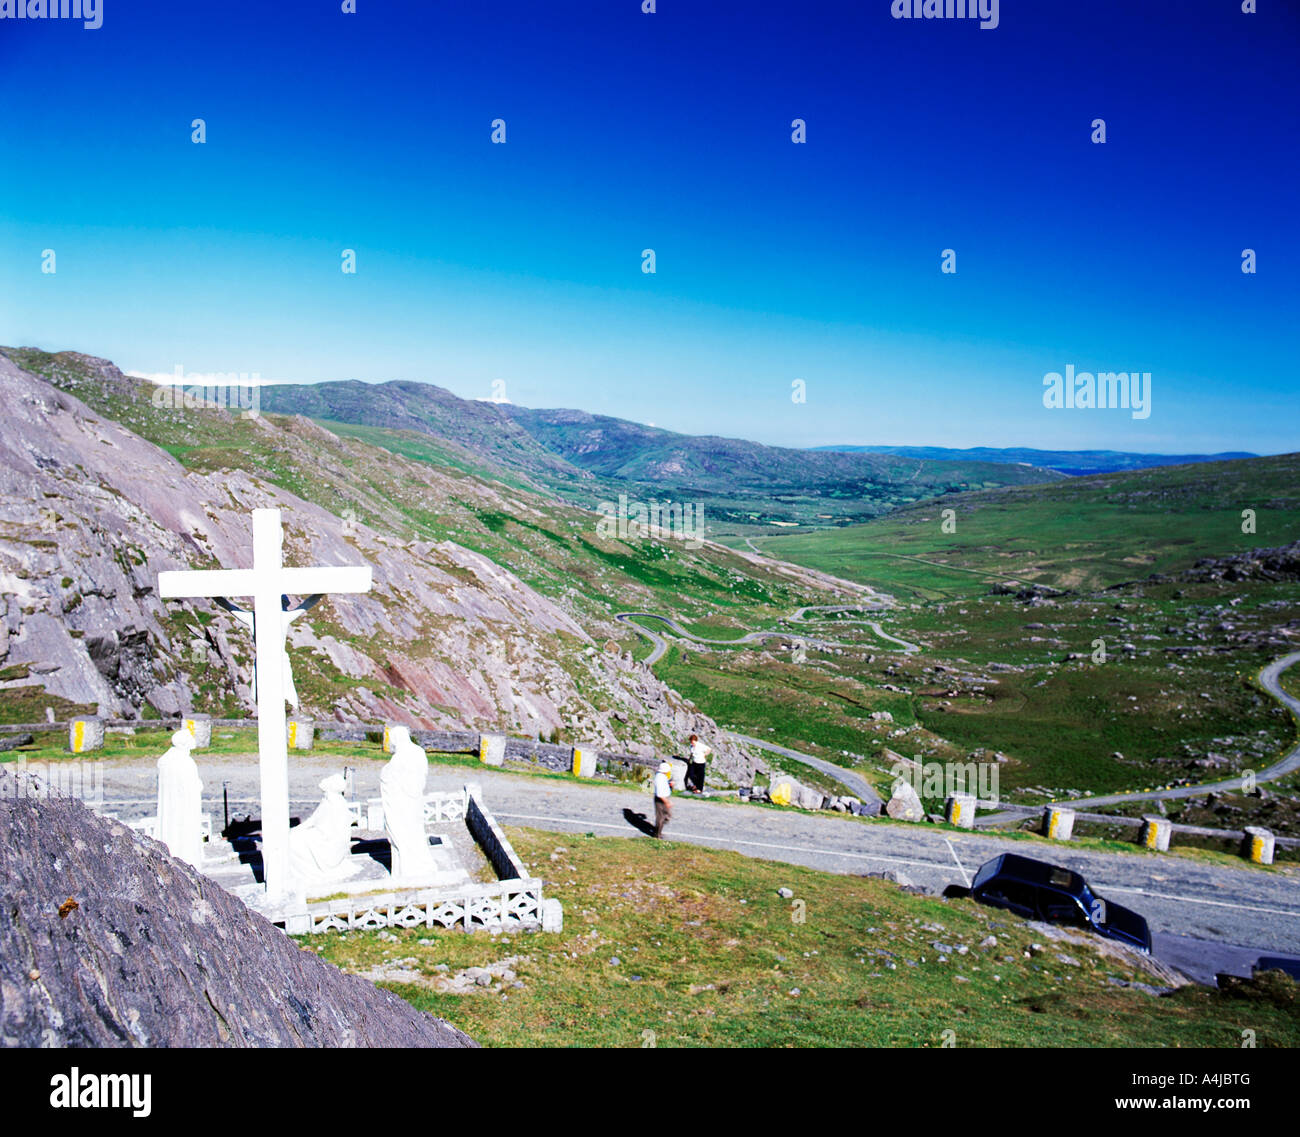 tall religious crucifix stands on top of mountain looking down on the valley below Stock Photo